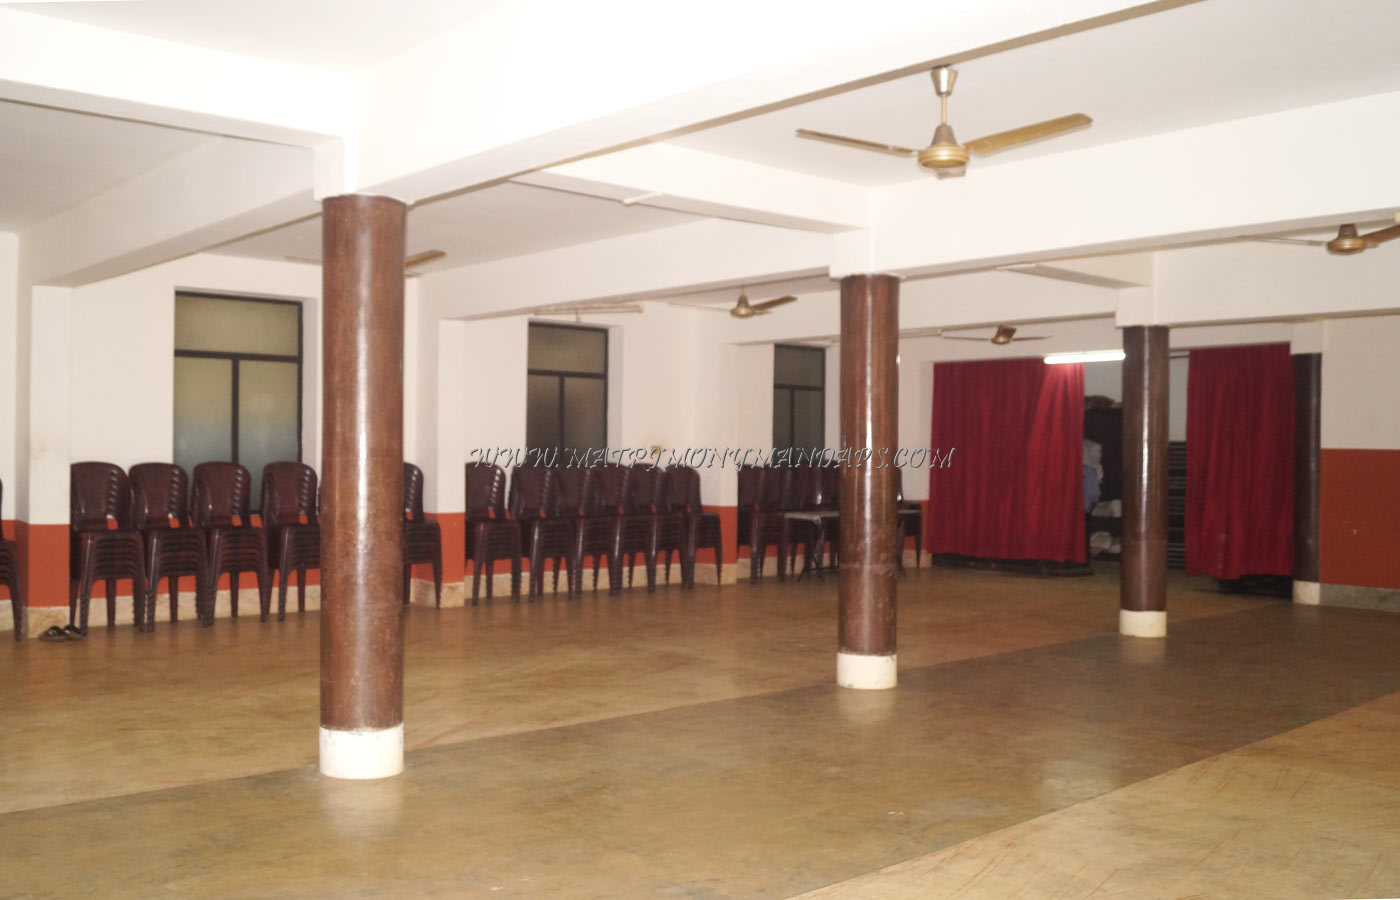 Find the availability of the Hariprasadam Regency (A/C) in North Nada, Guruvayoor and avail special offers